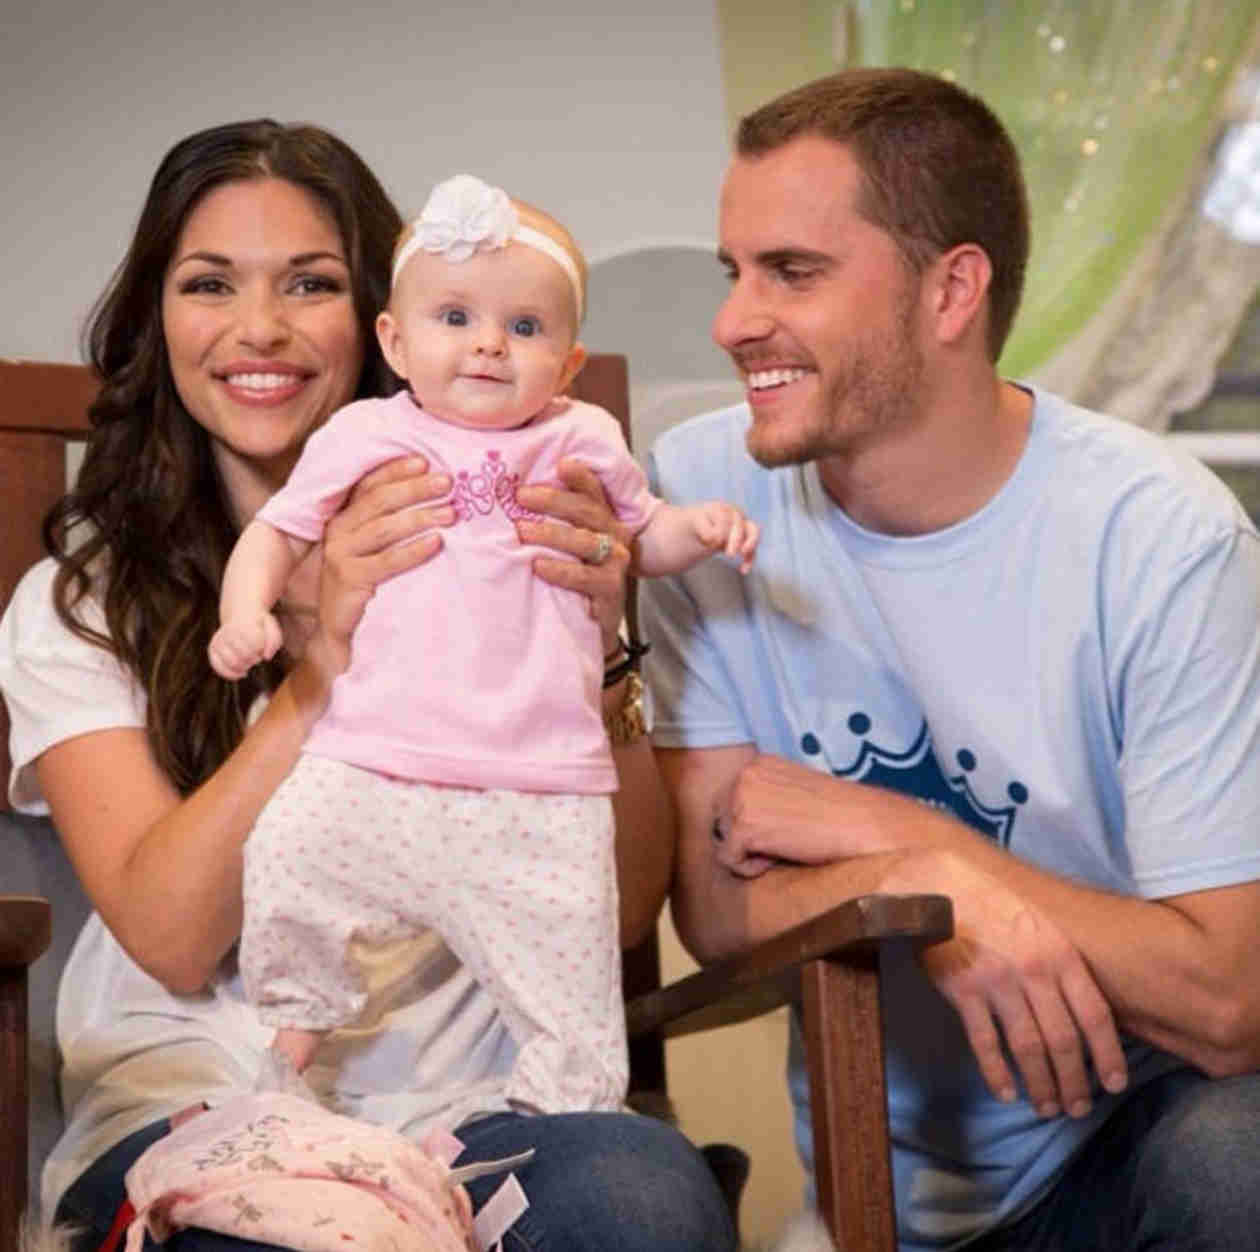 DeAnna Pappas's Family Just Welcomed a New Baby! (PHOTO)